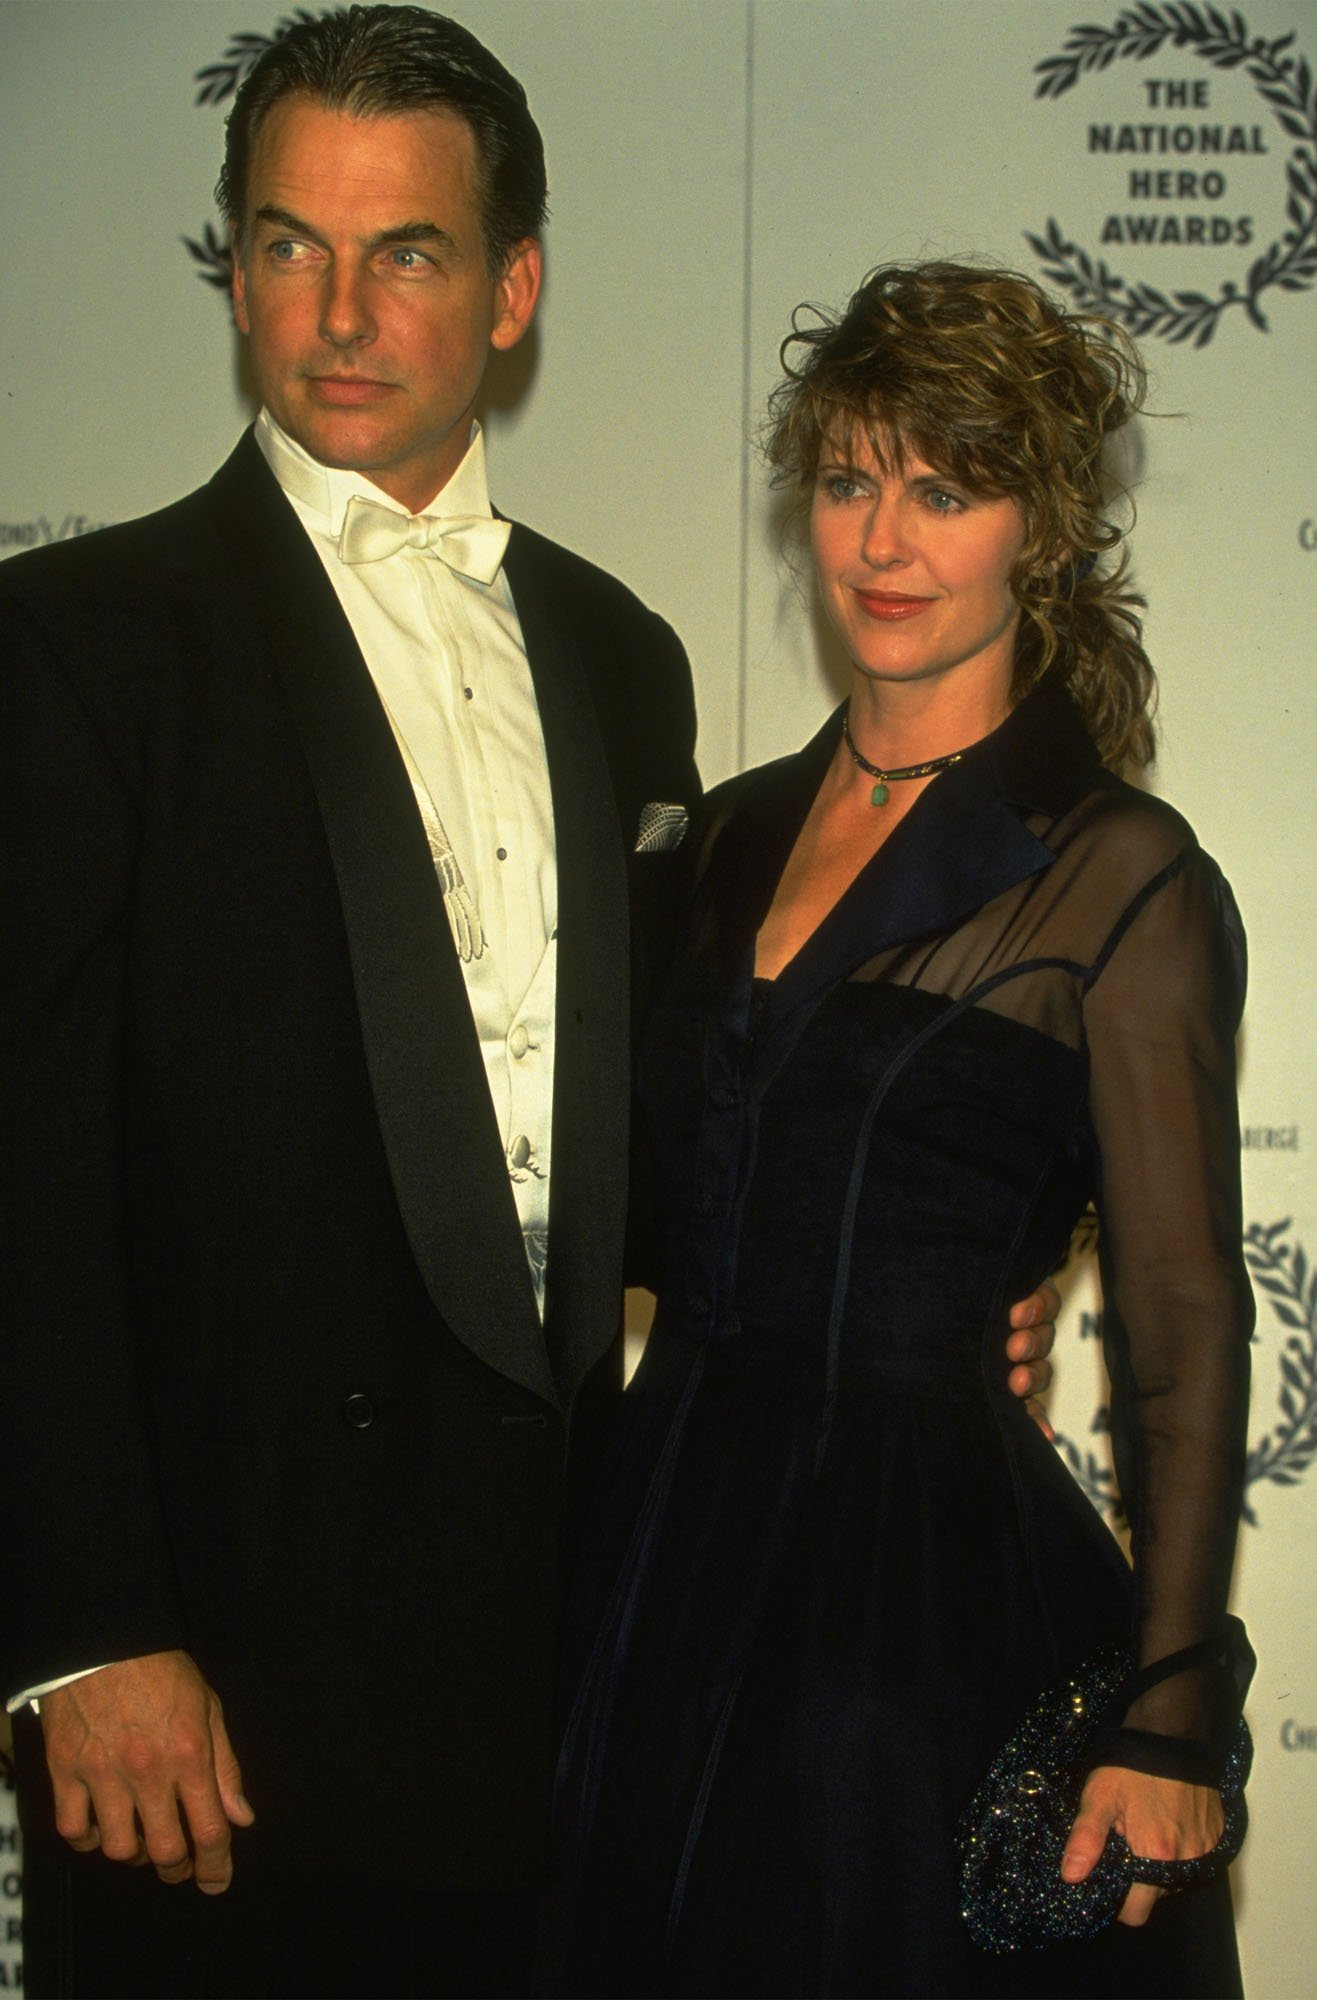 A young Mark Harmon and his wife Pam Dawber | Photo: Getty Images